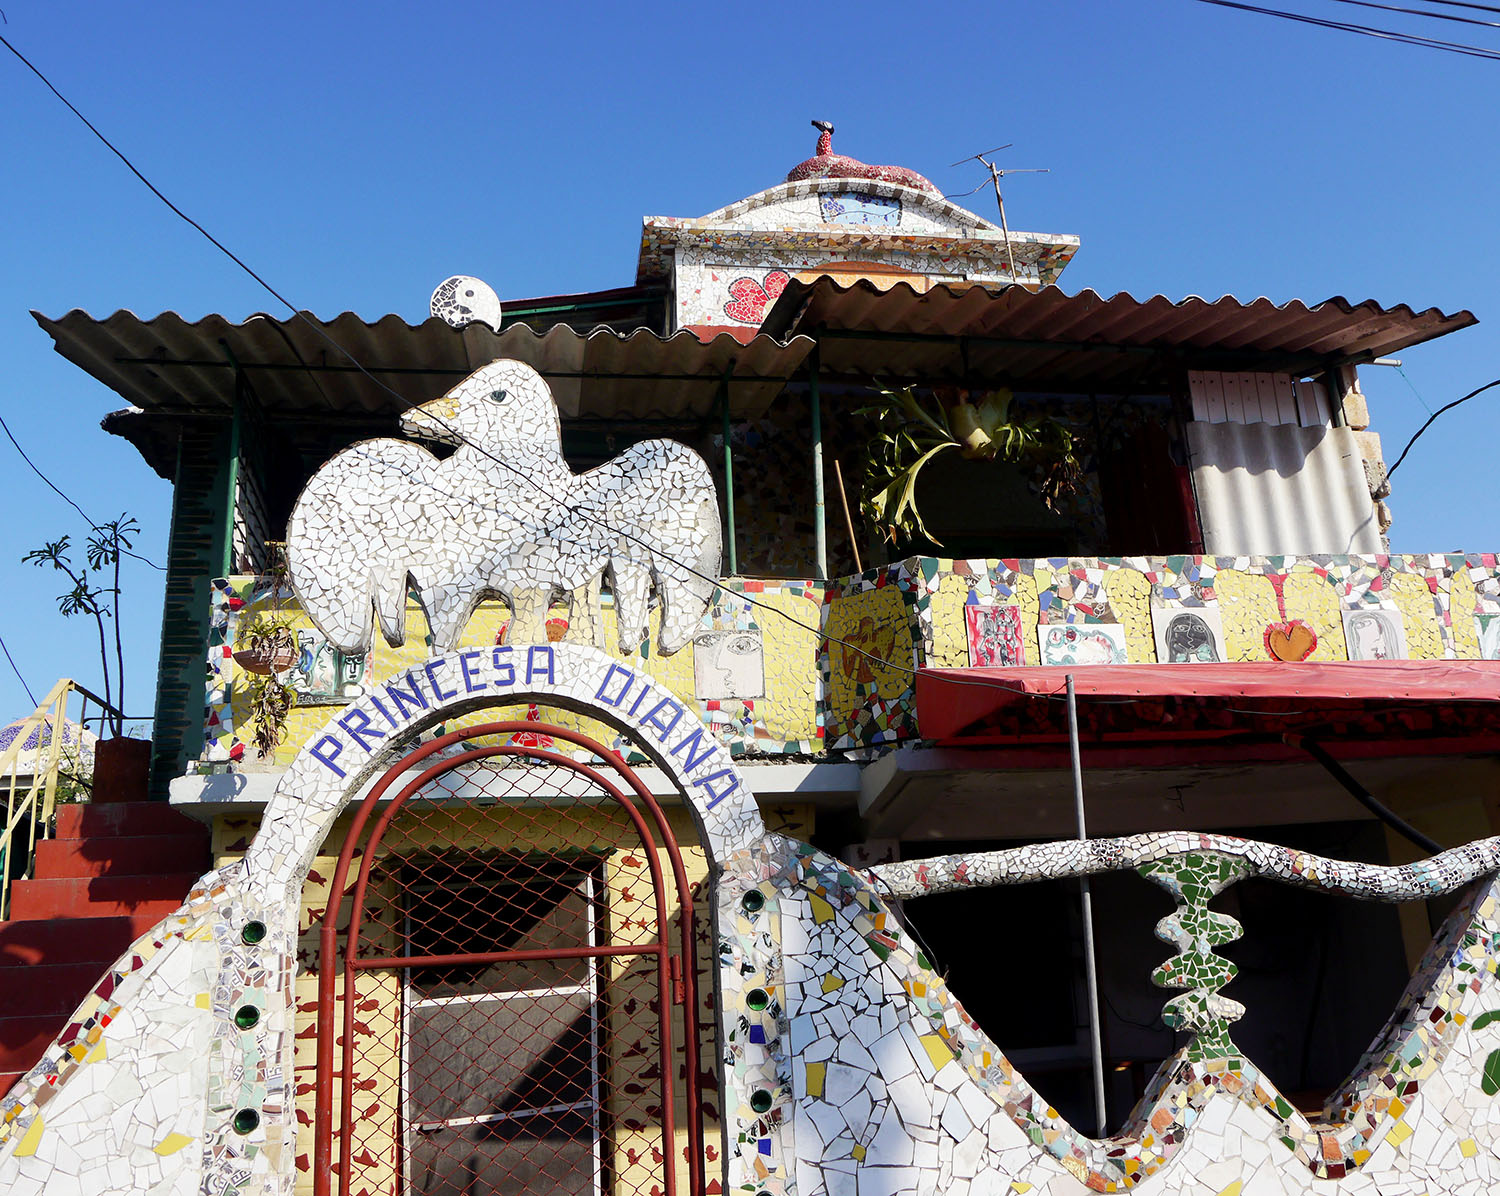 Close up of a home with a mosaic bird.